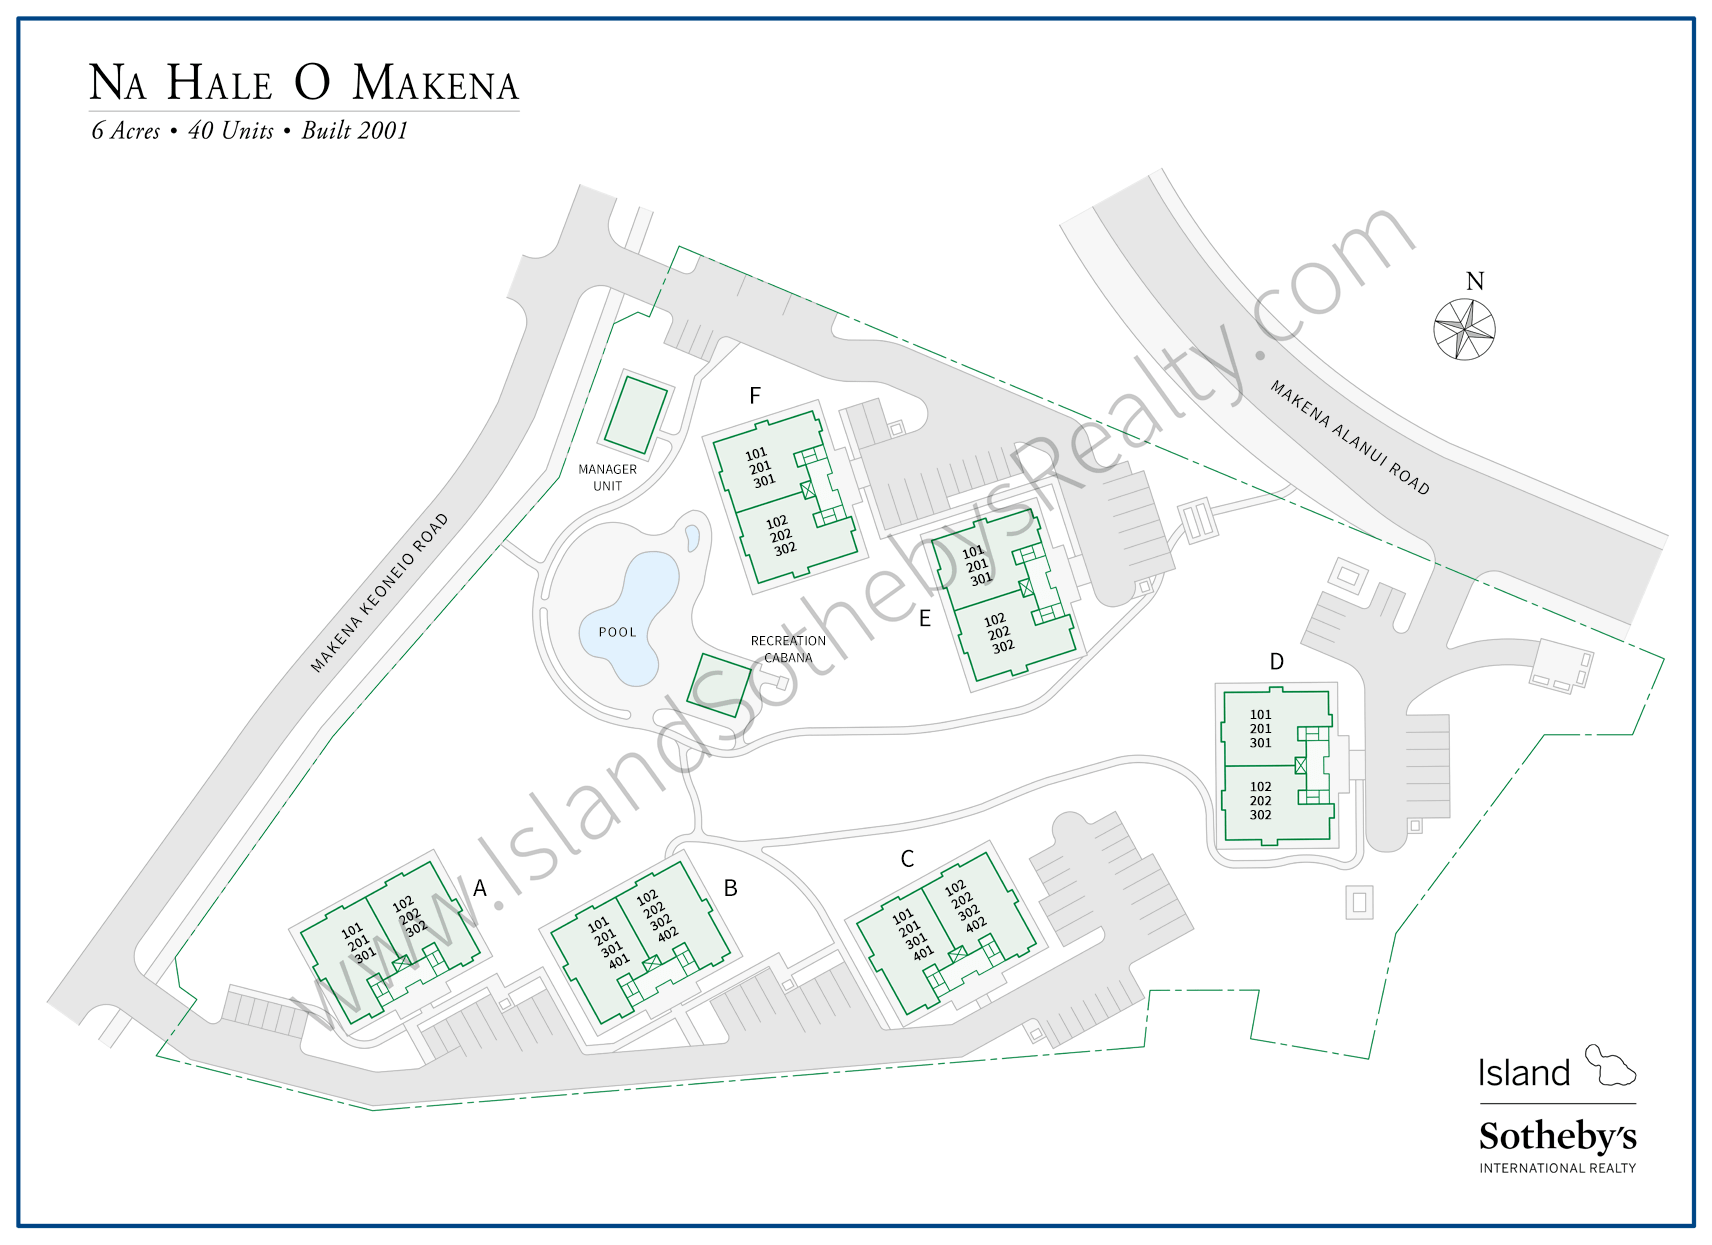 Map of Na Hale O Makena Maui